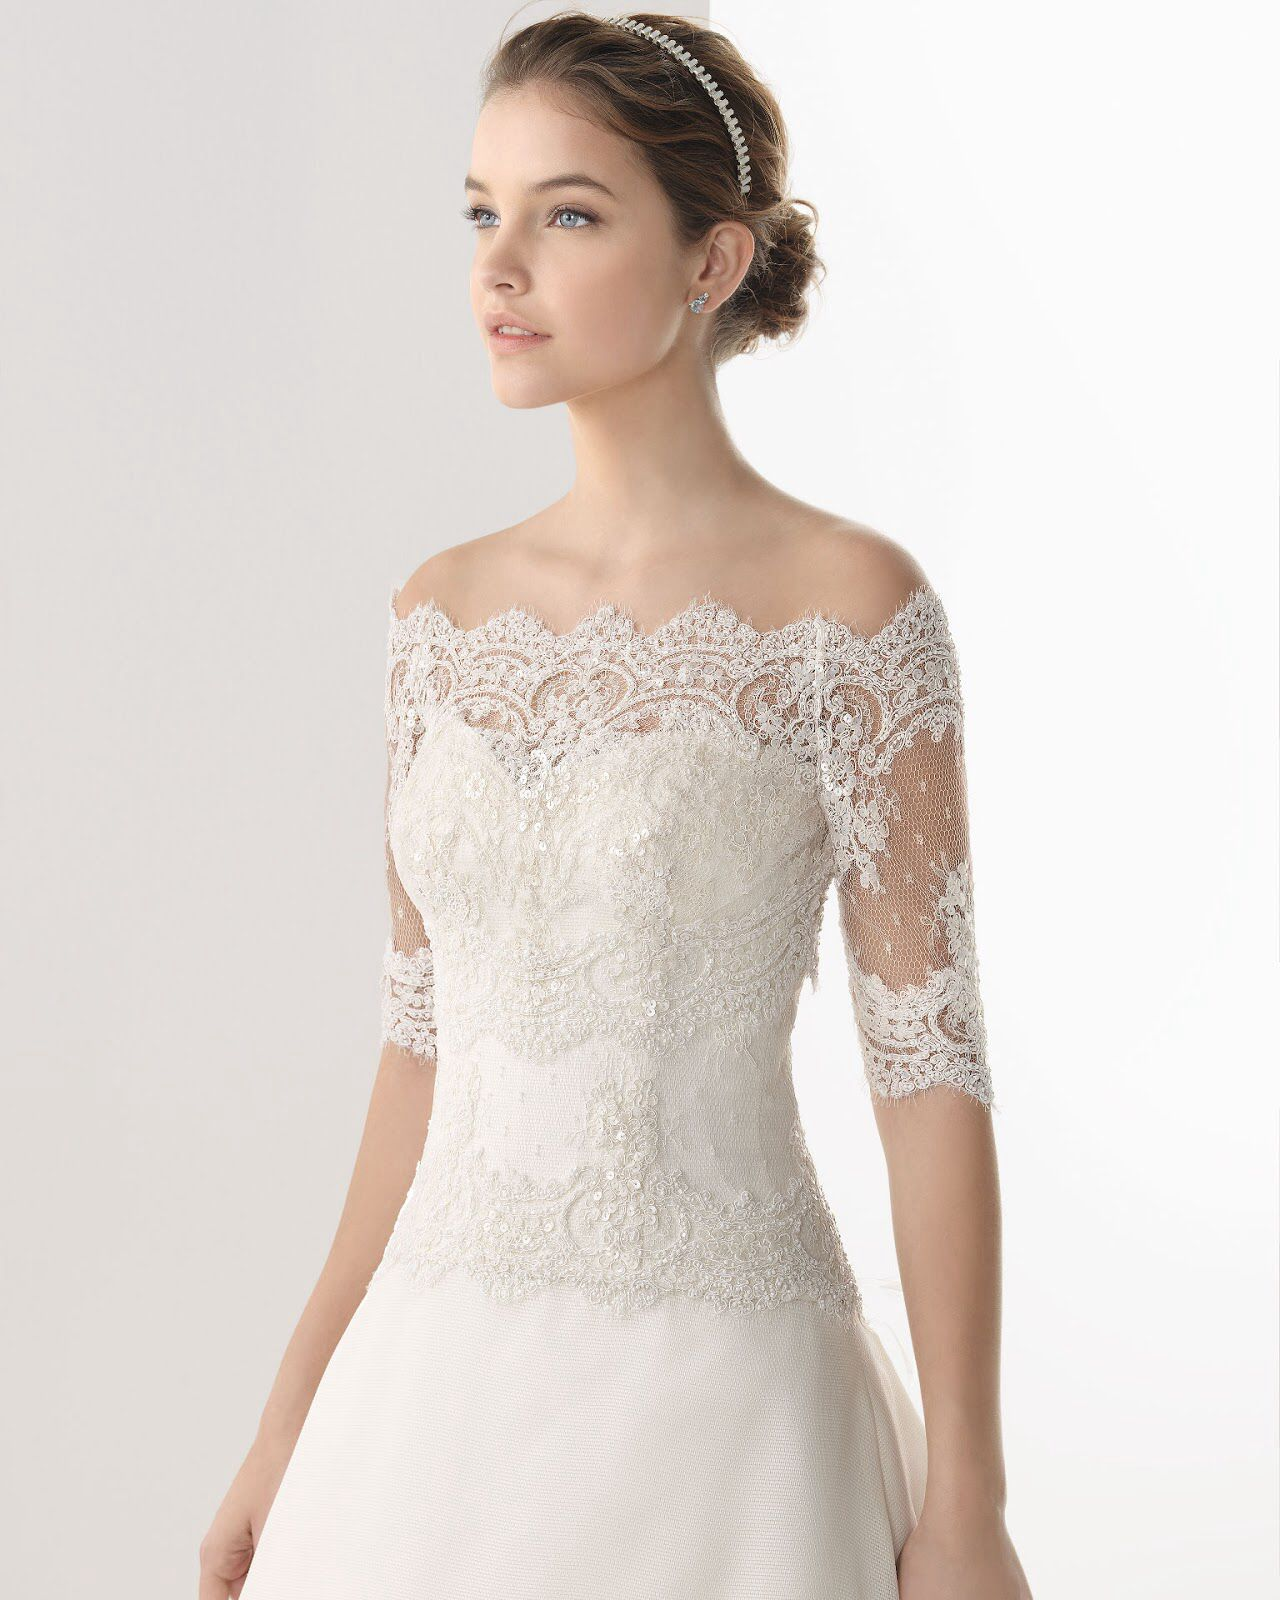 Short lace wedding dress with sleeves  Short sleeve lace wedding dress with buttoned up back  Dream